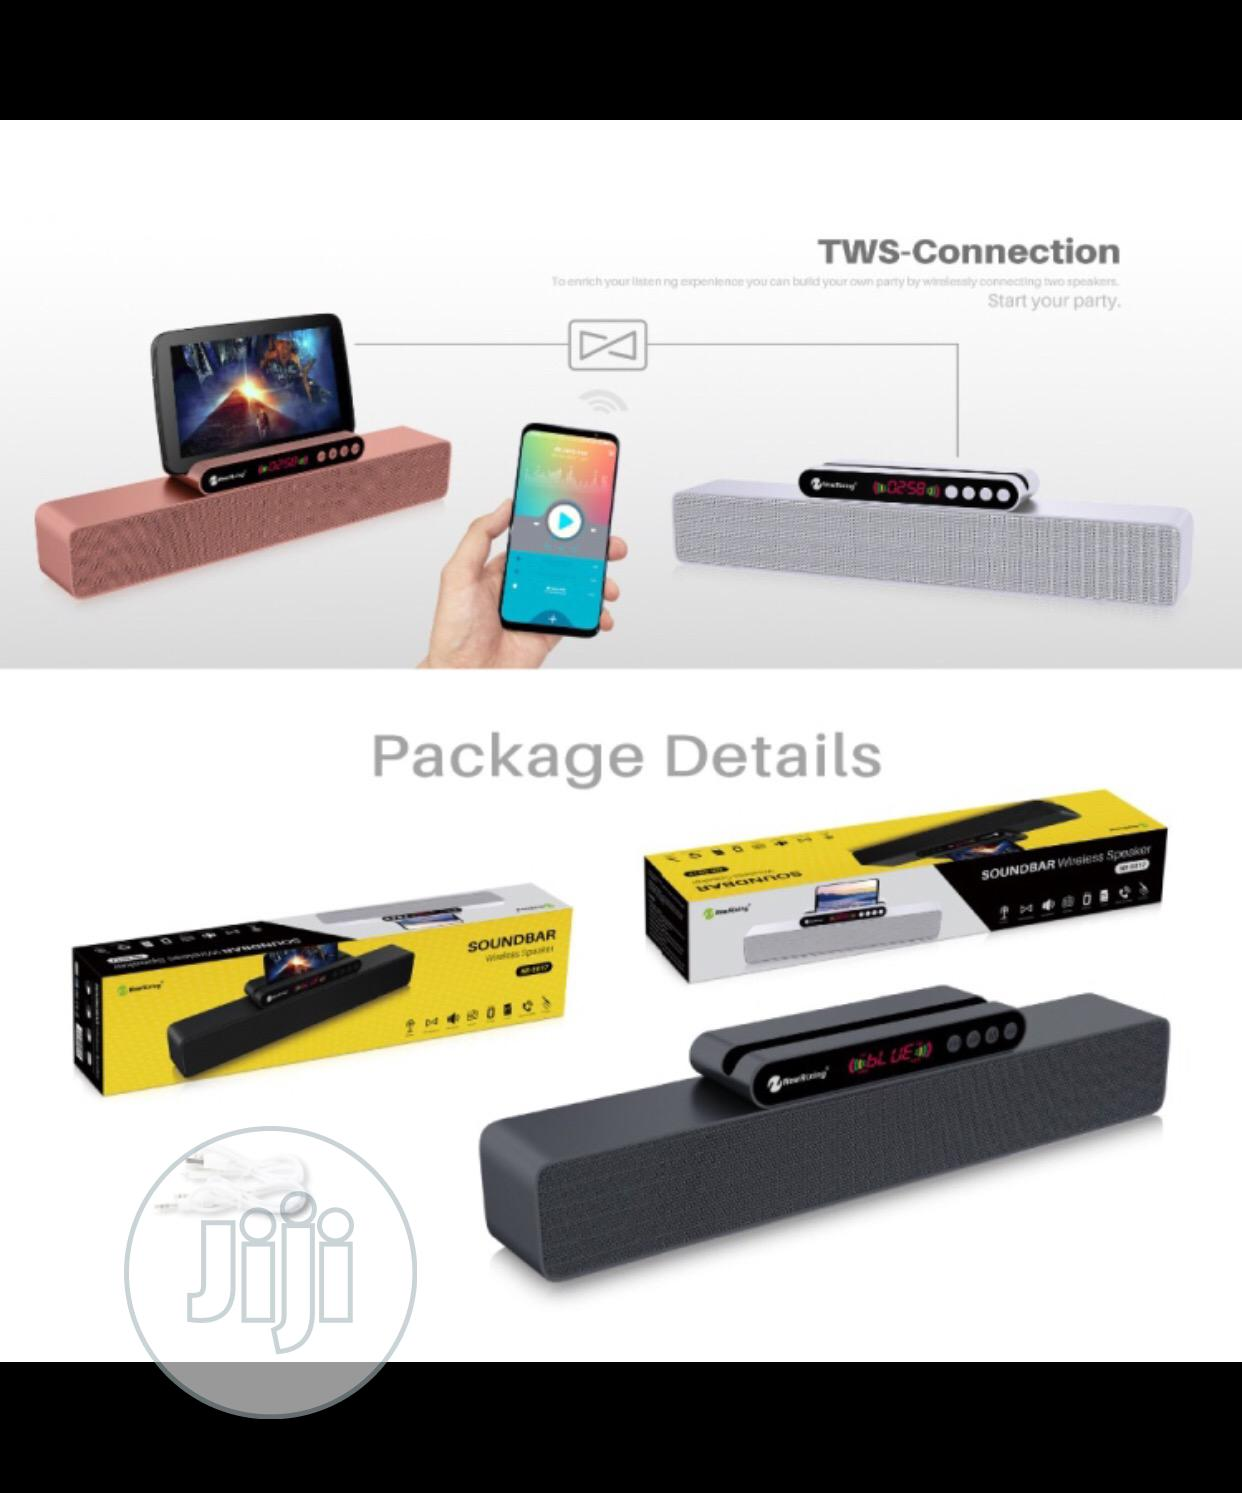 New Rixing NR-5017 TWS Connection Soudbar Wireless Bluetooth Speaker